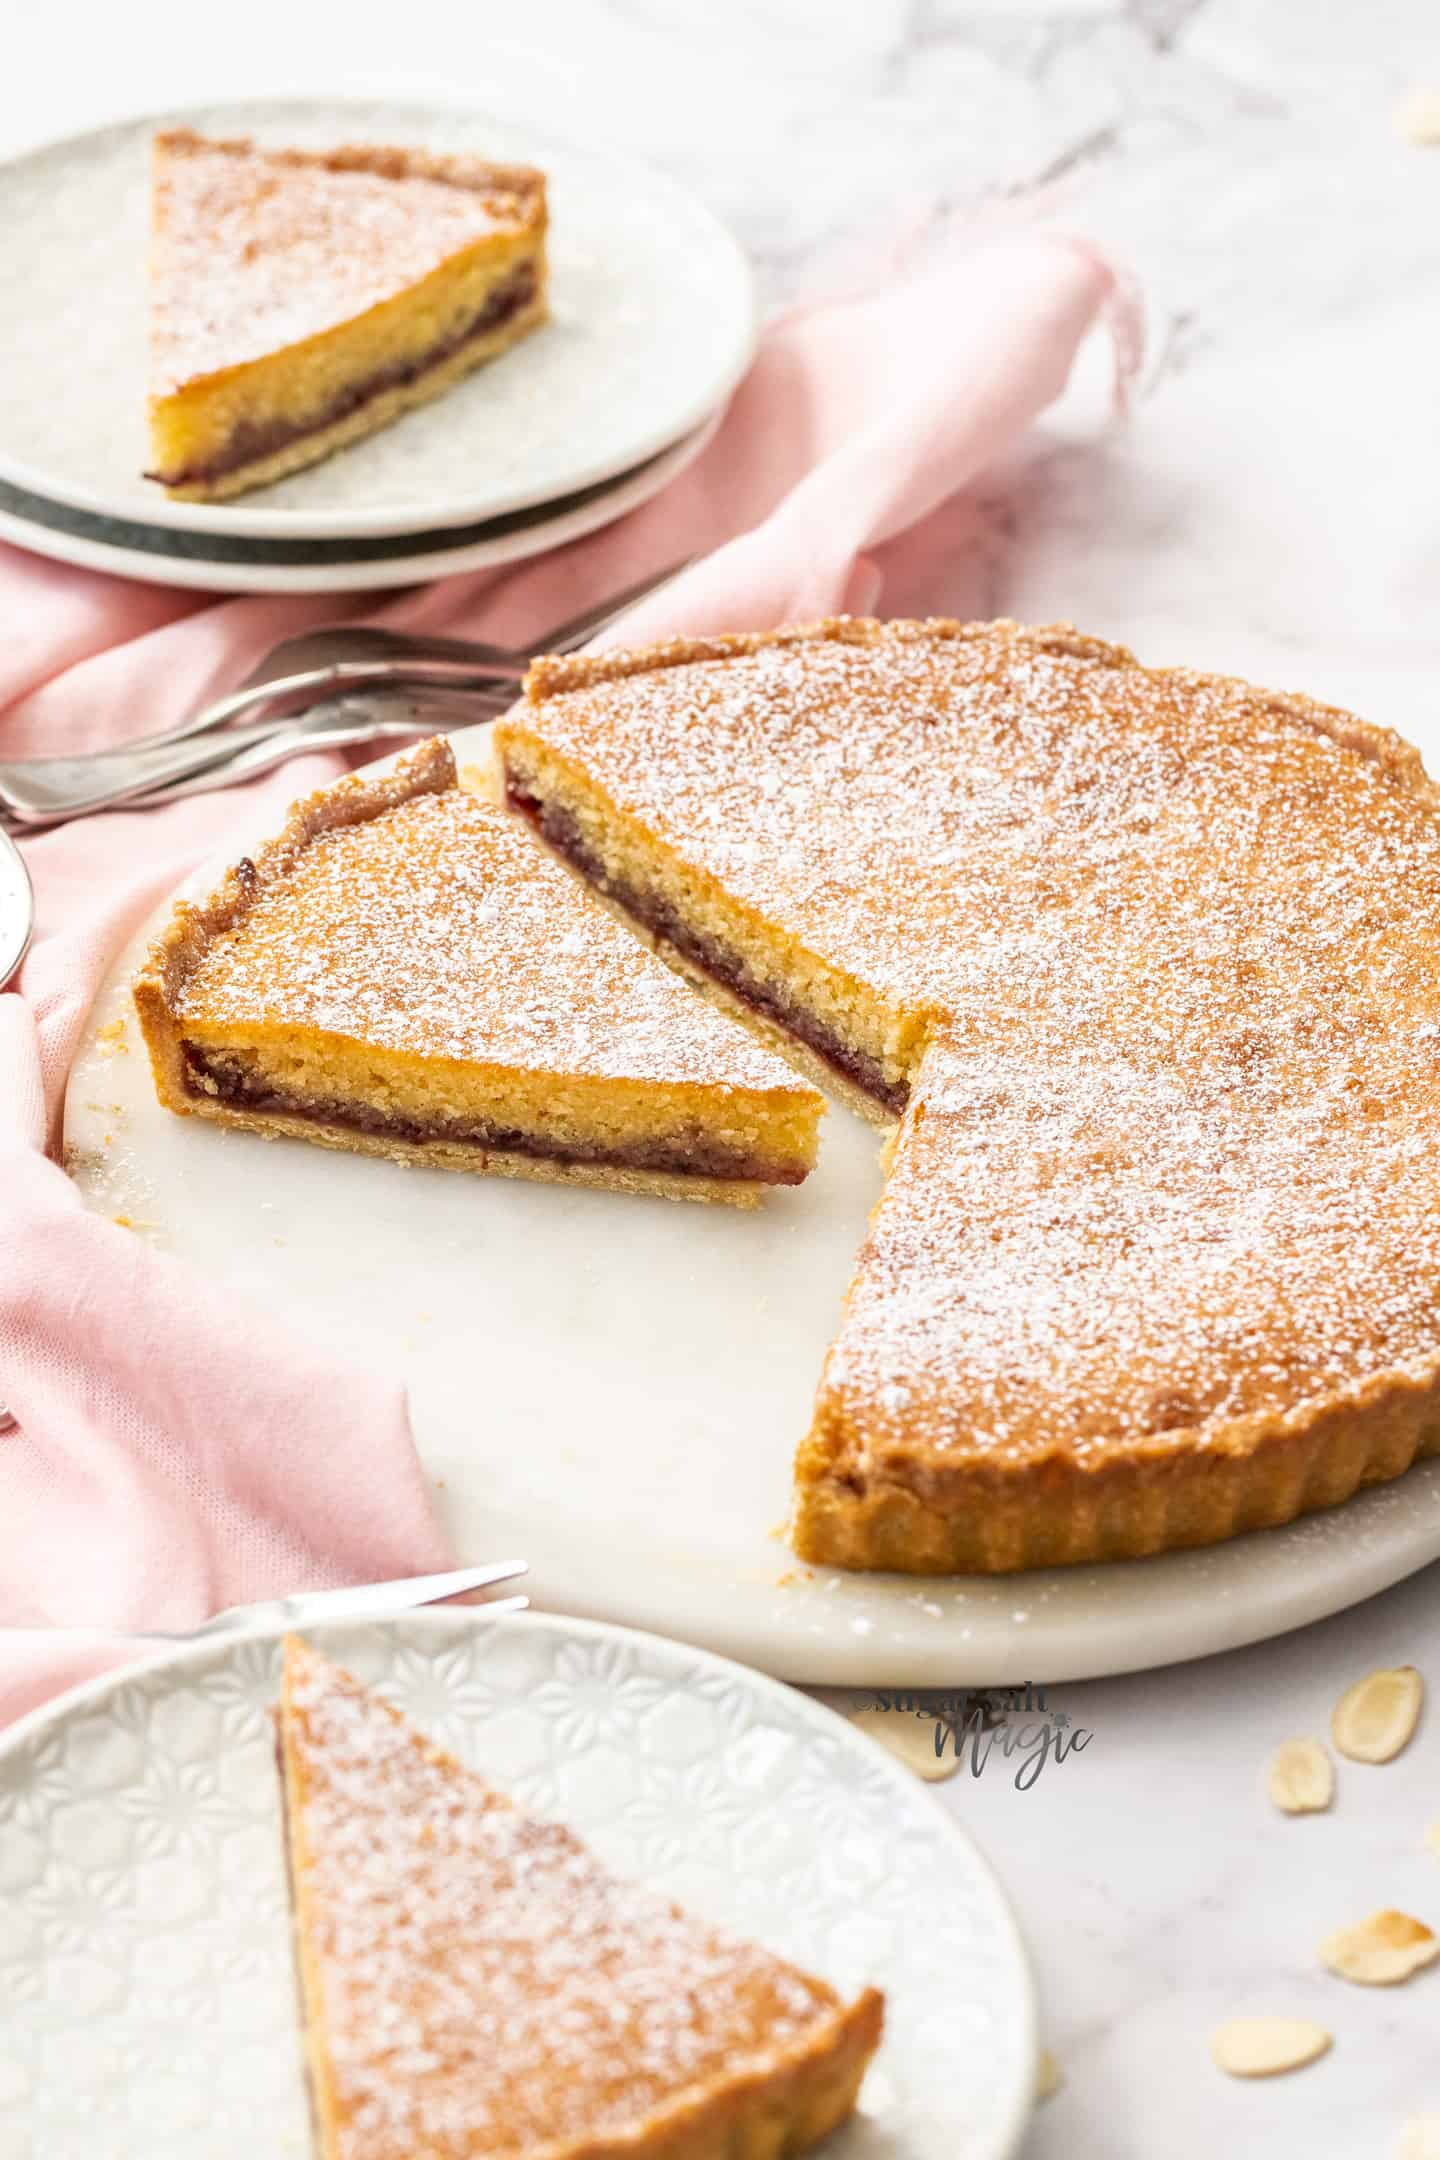 A bakewell tart, with a slice cut out, sitting on a white cake platter.